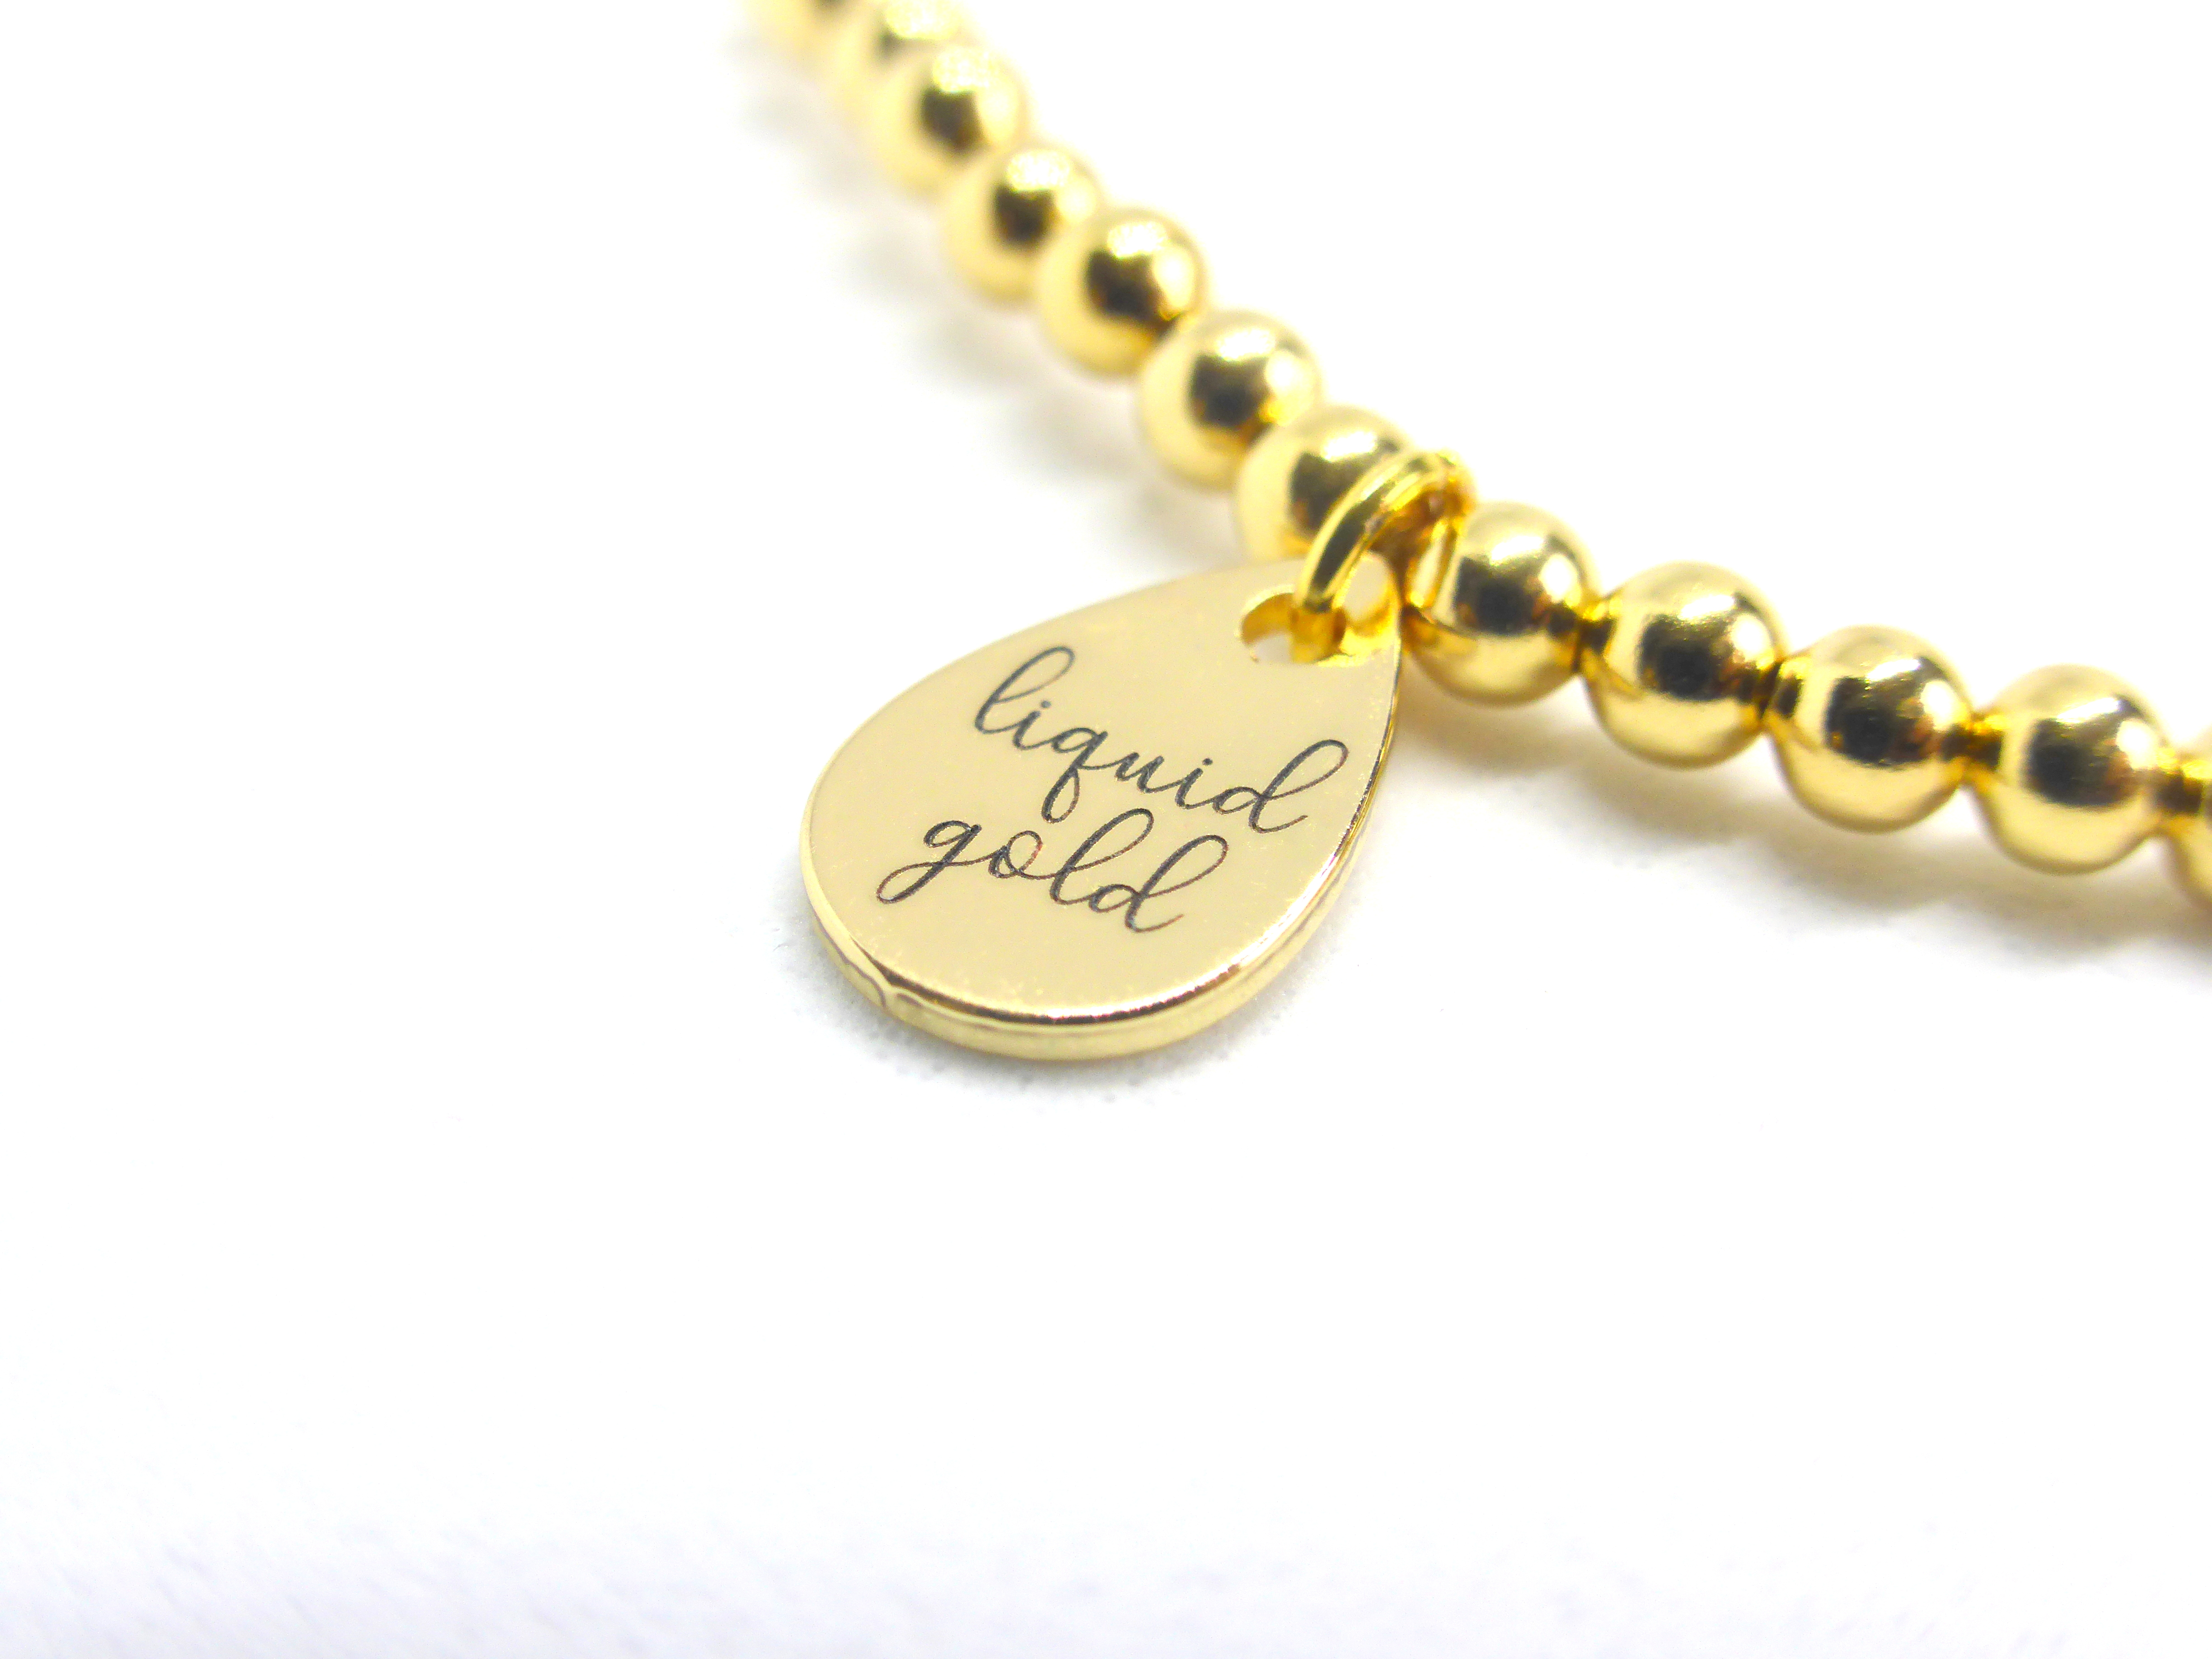 Liquid Gold Tag 14K gold plated